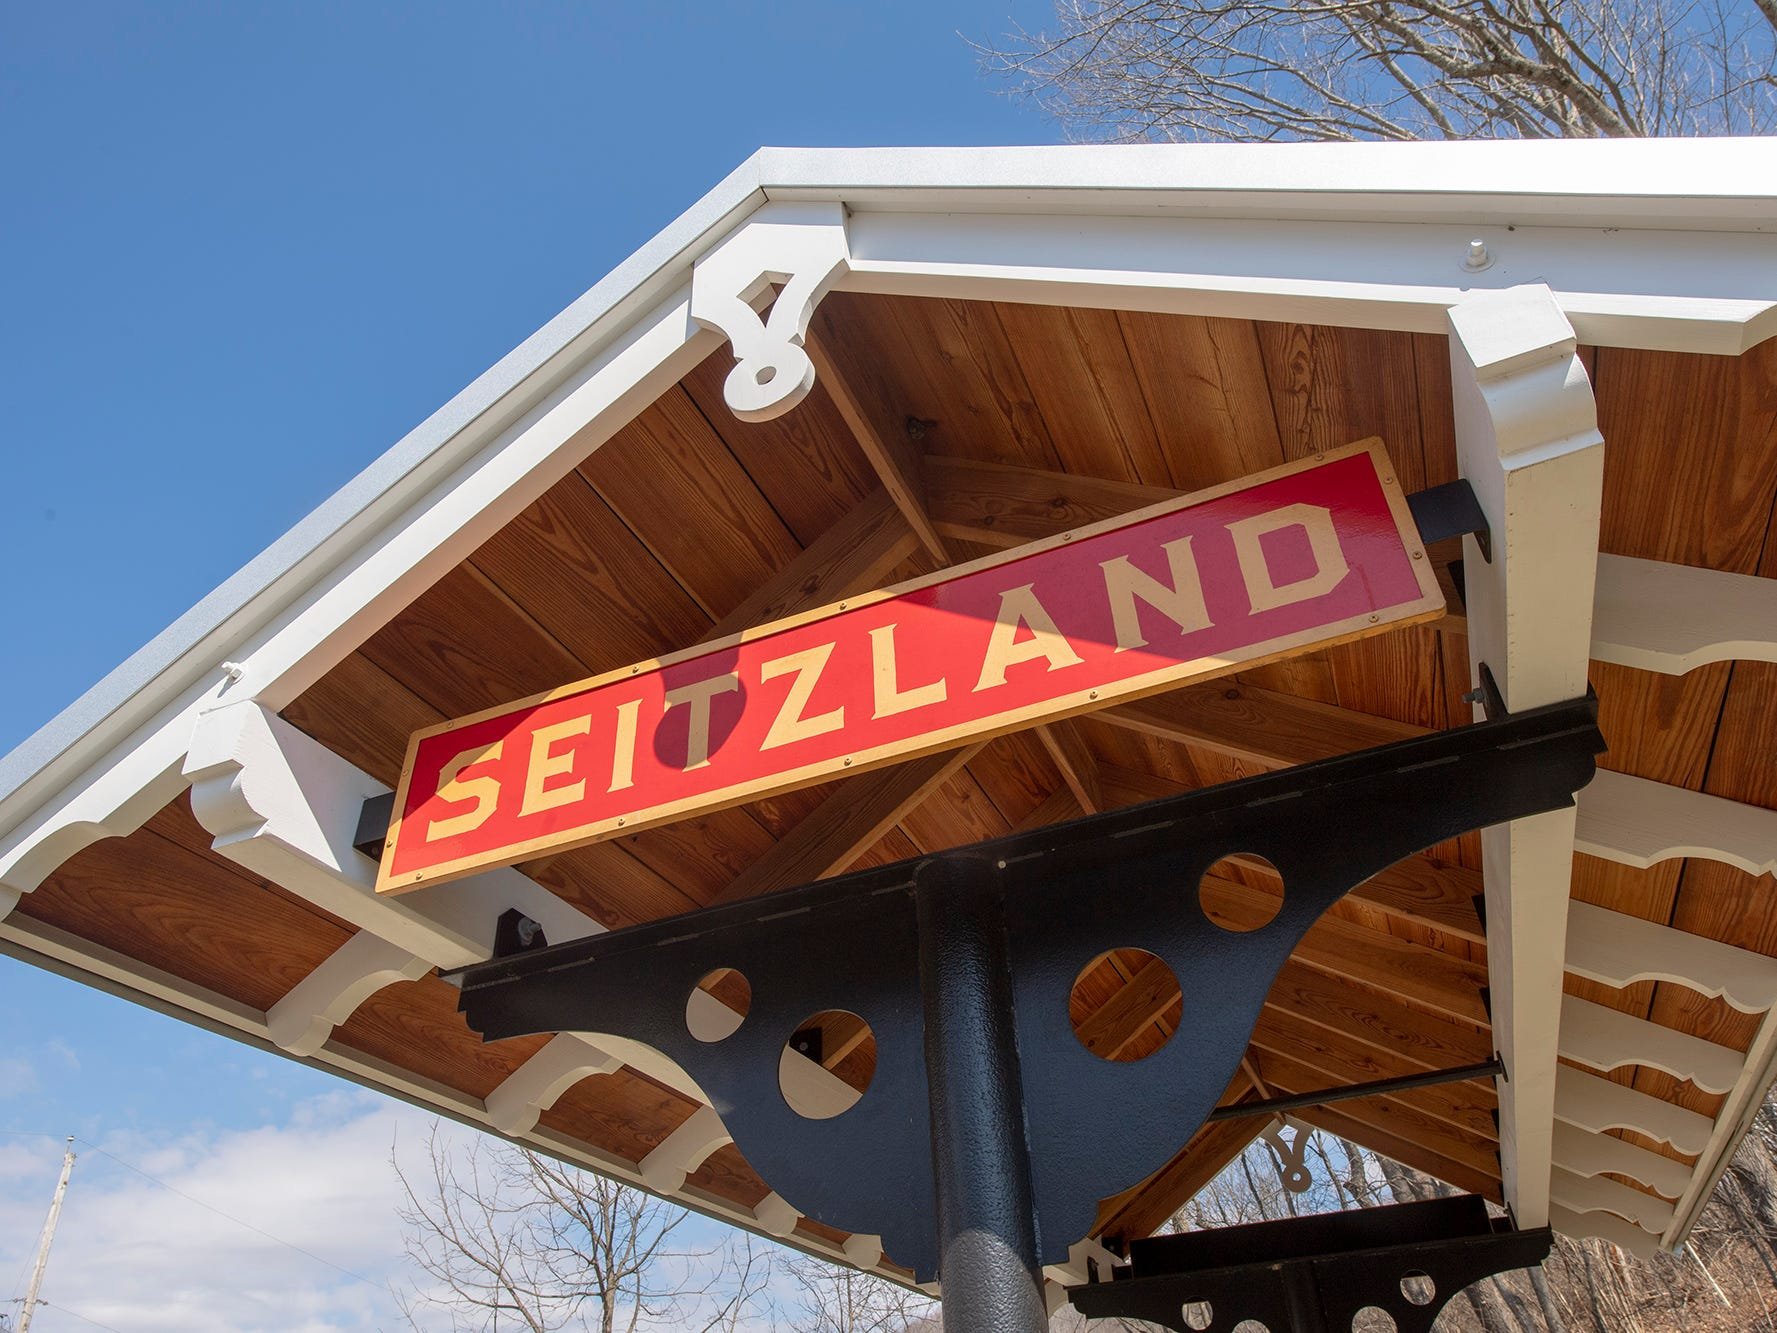 The Seitzland train station is next to the York County Heritage Rail Trail.